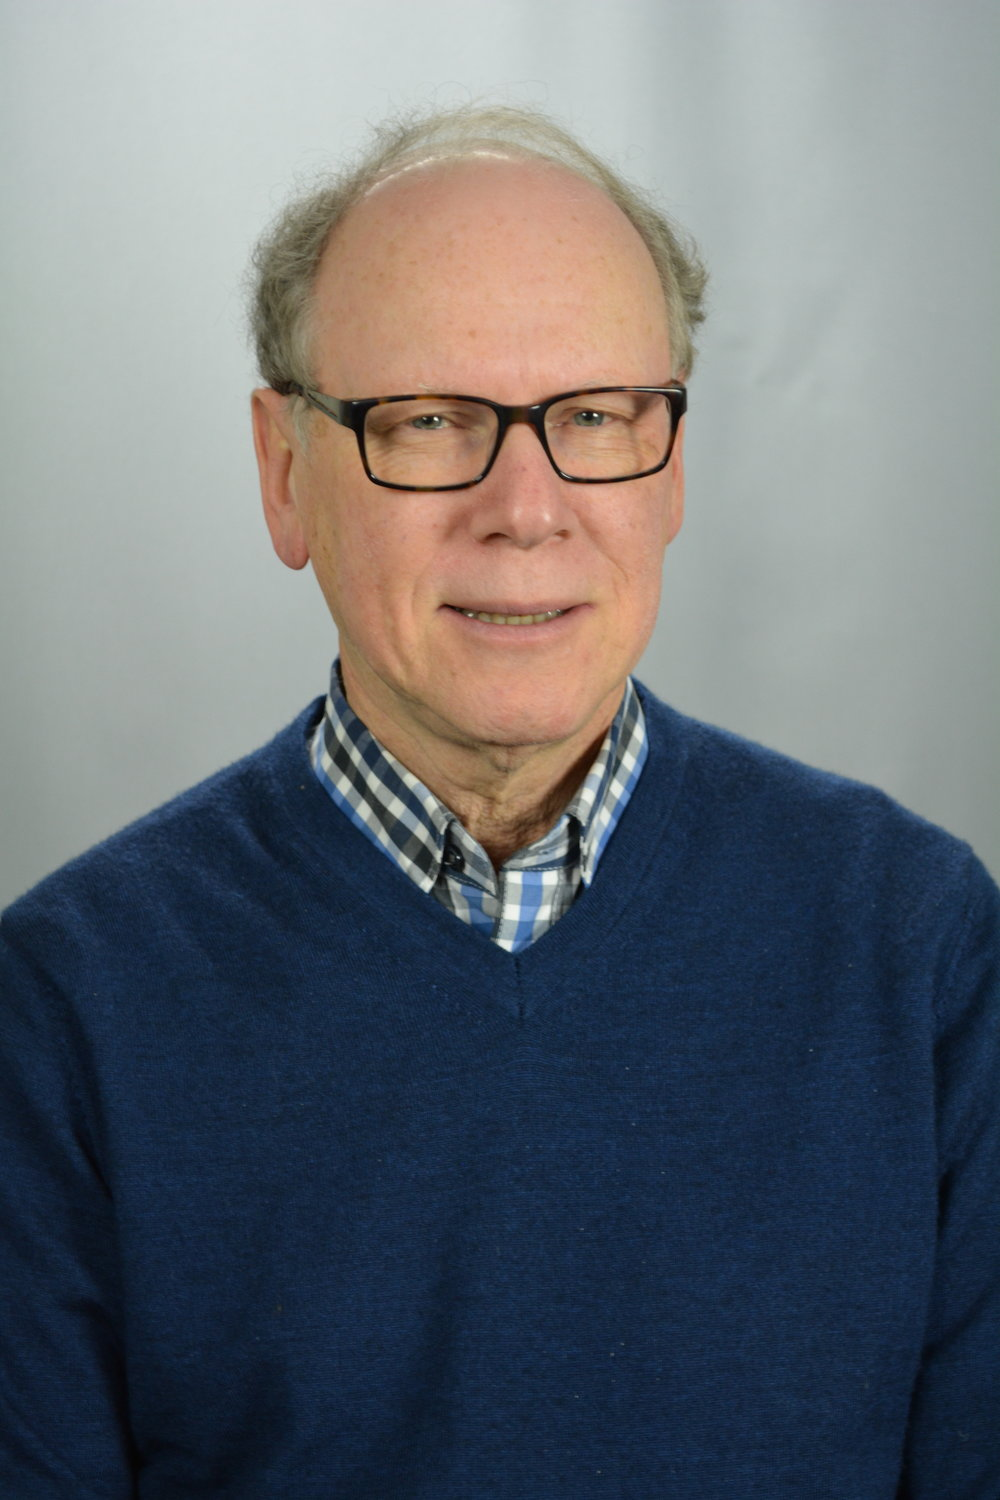 Dr. John Telner (Retired)